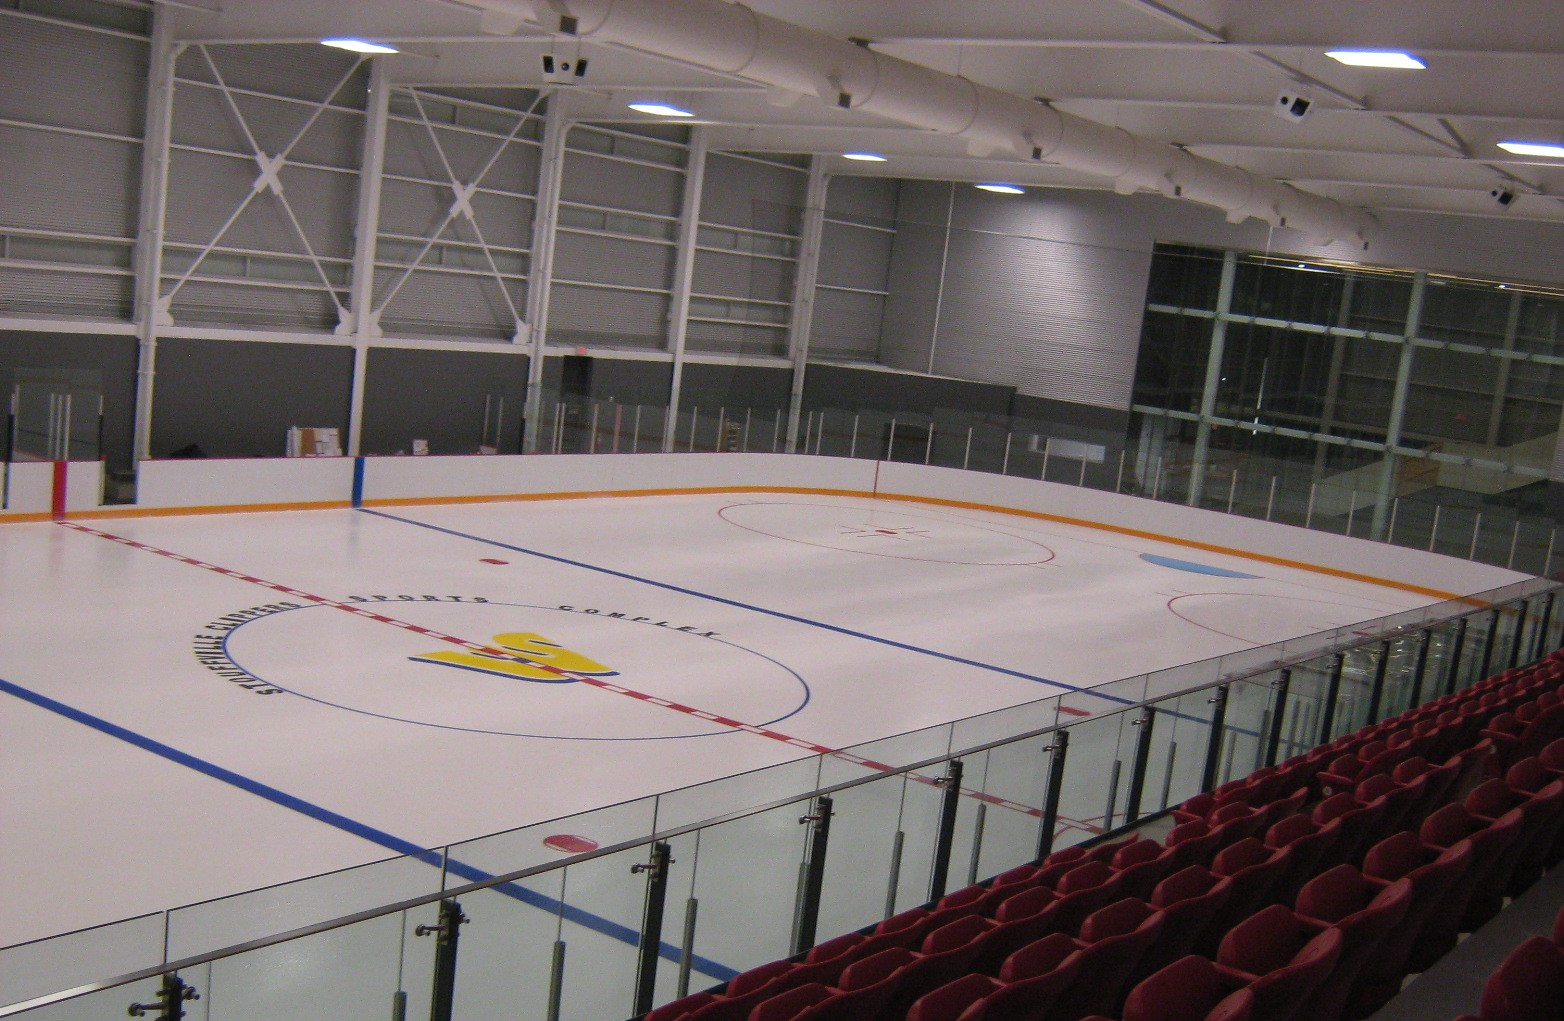 Supporting image for Whitchurch-Stouffville Fire Station & Arena Complex